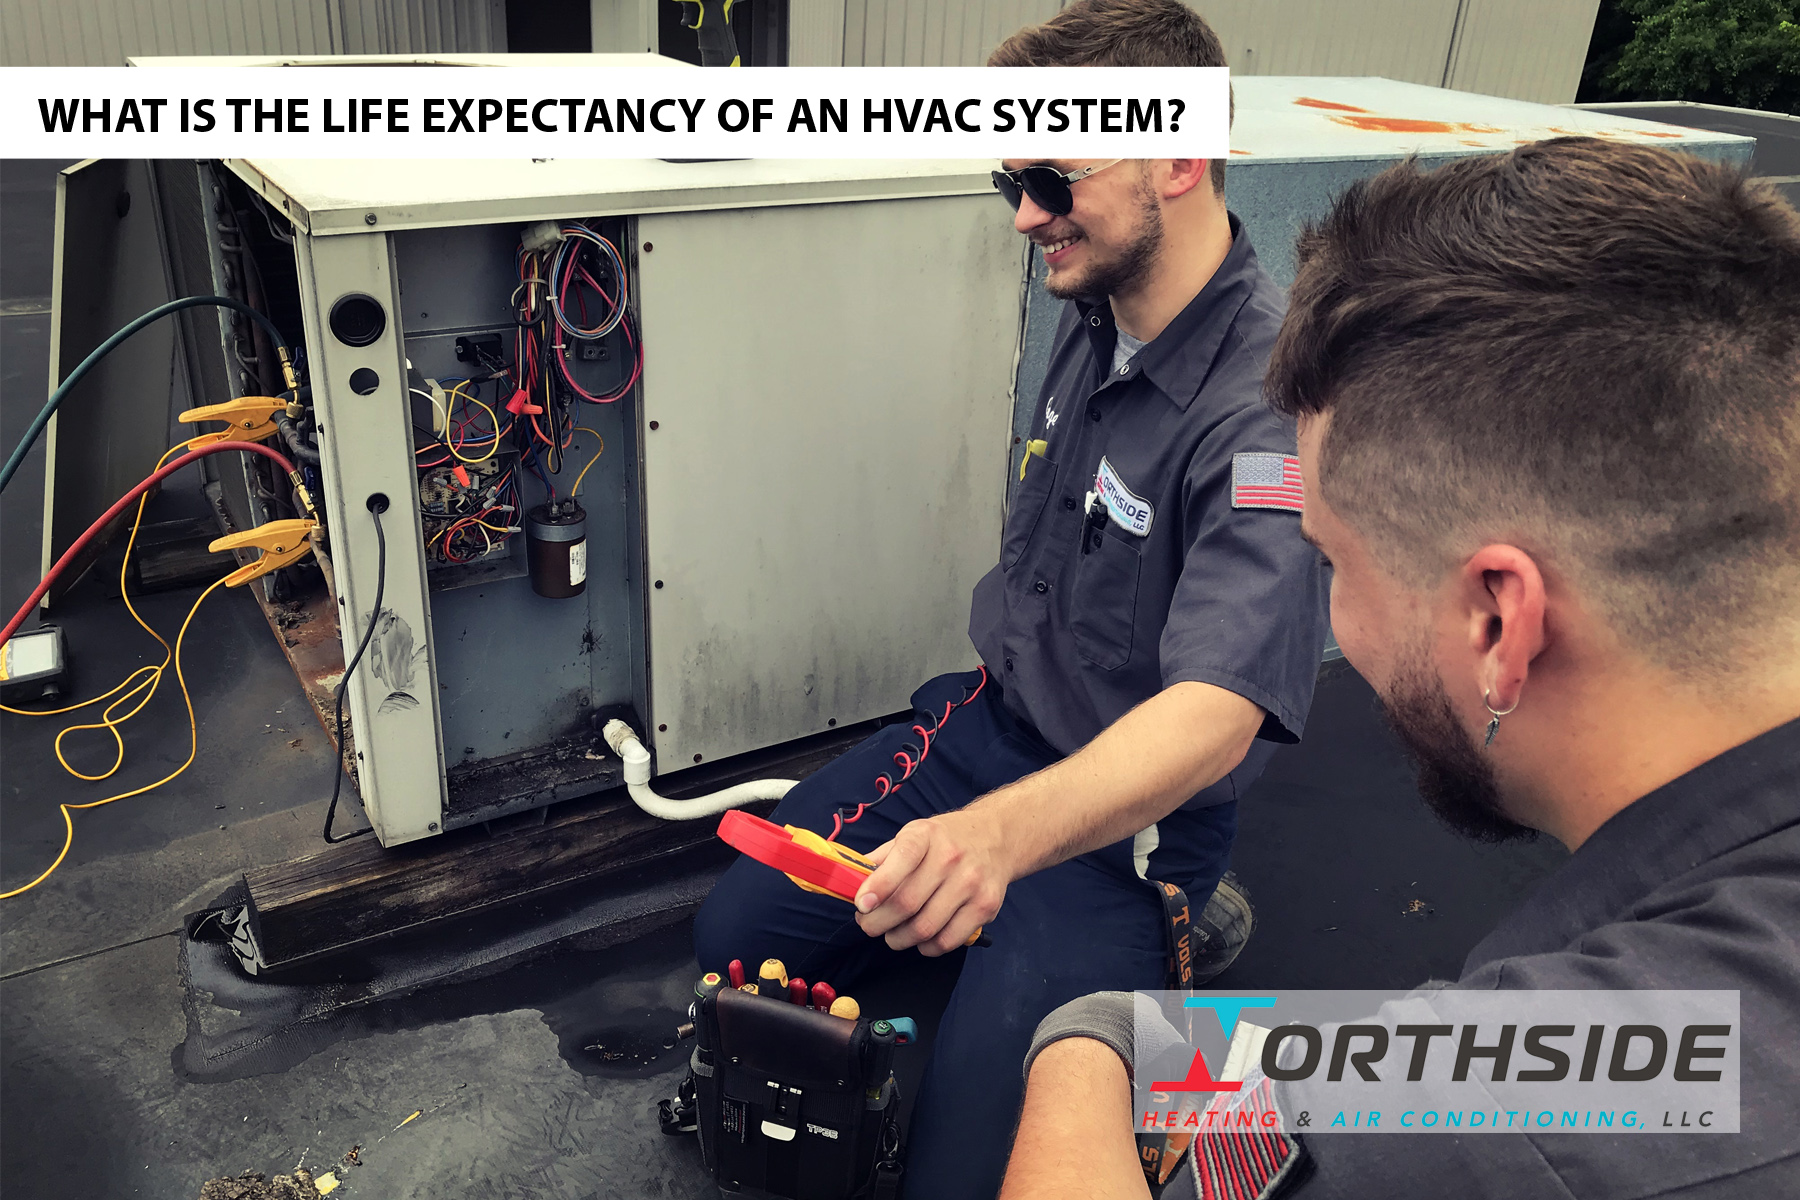 WHAT IS THE LIFE EXPECTANCY OF AN HVAC SYSTEM?